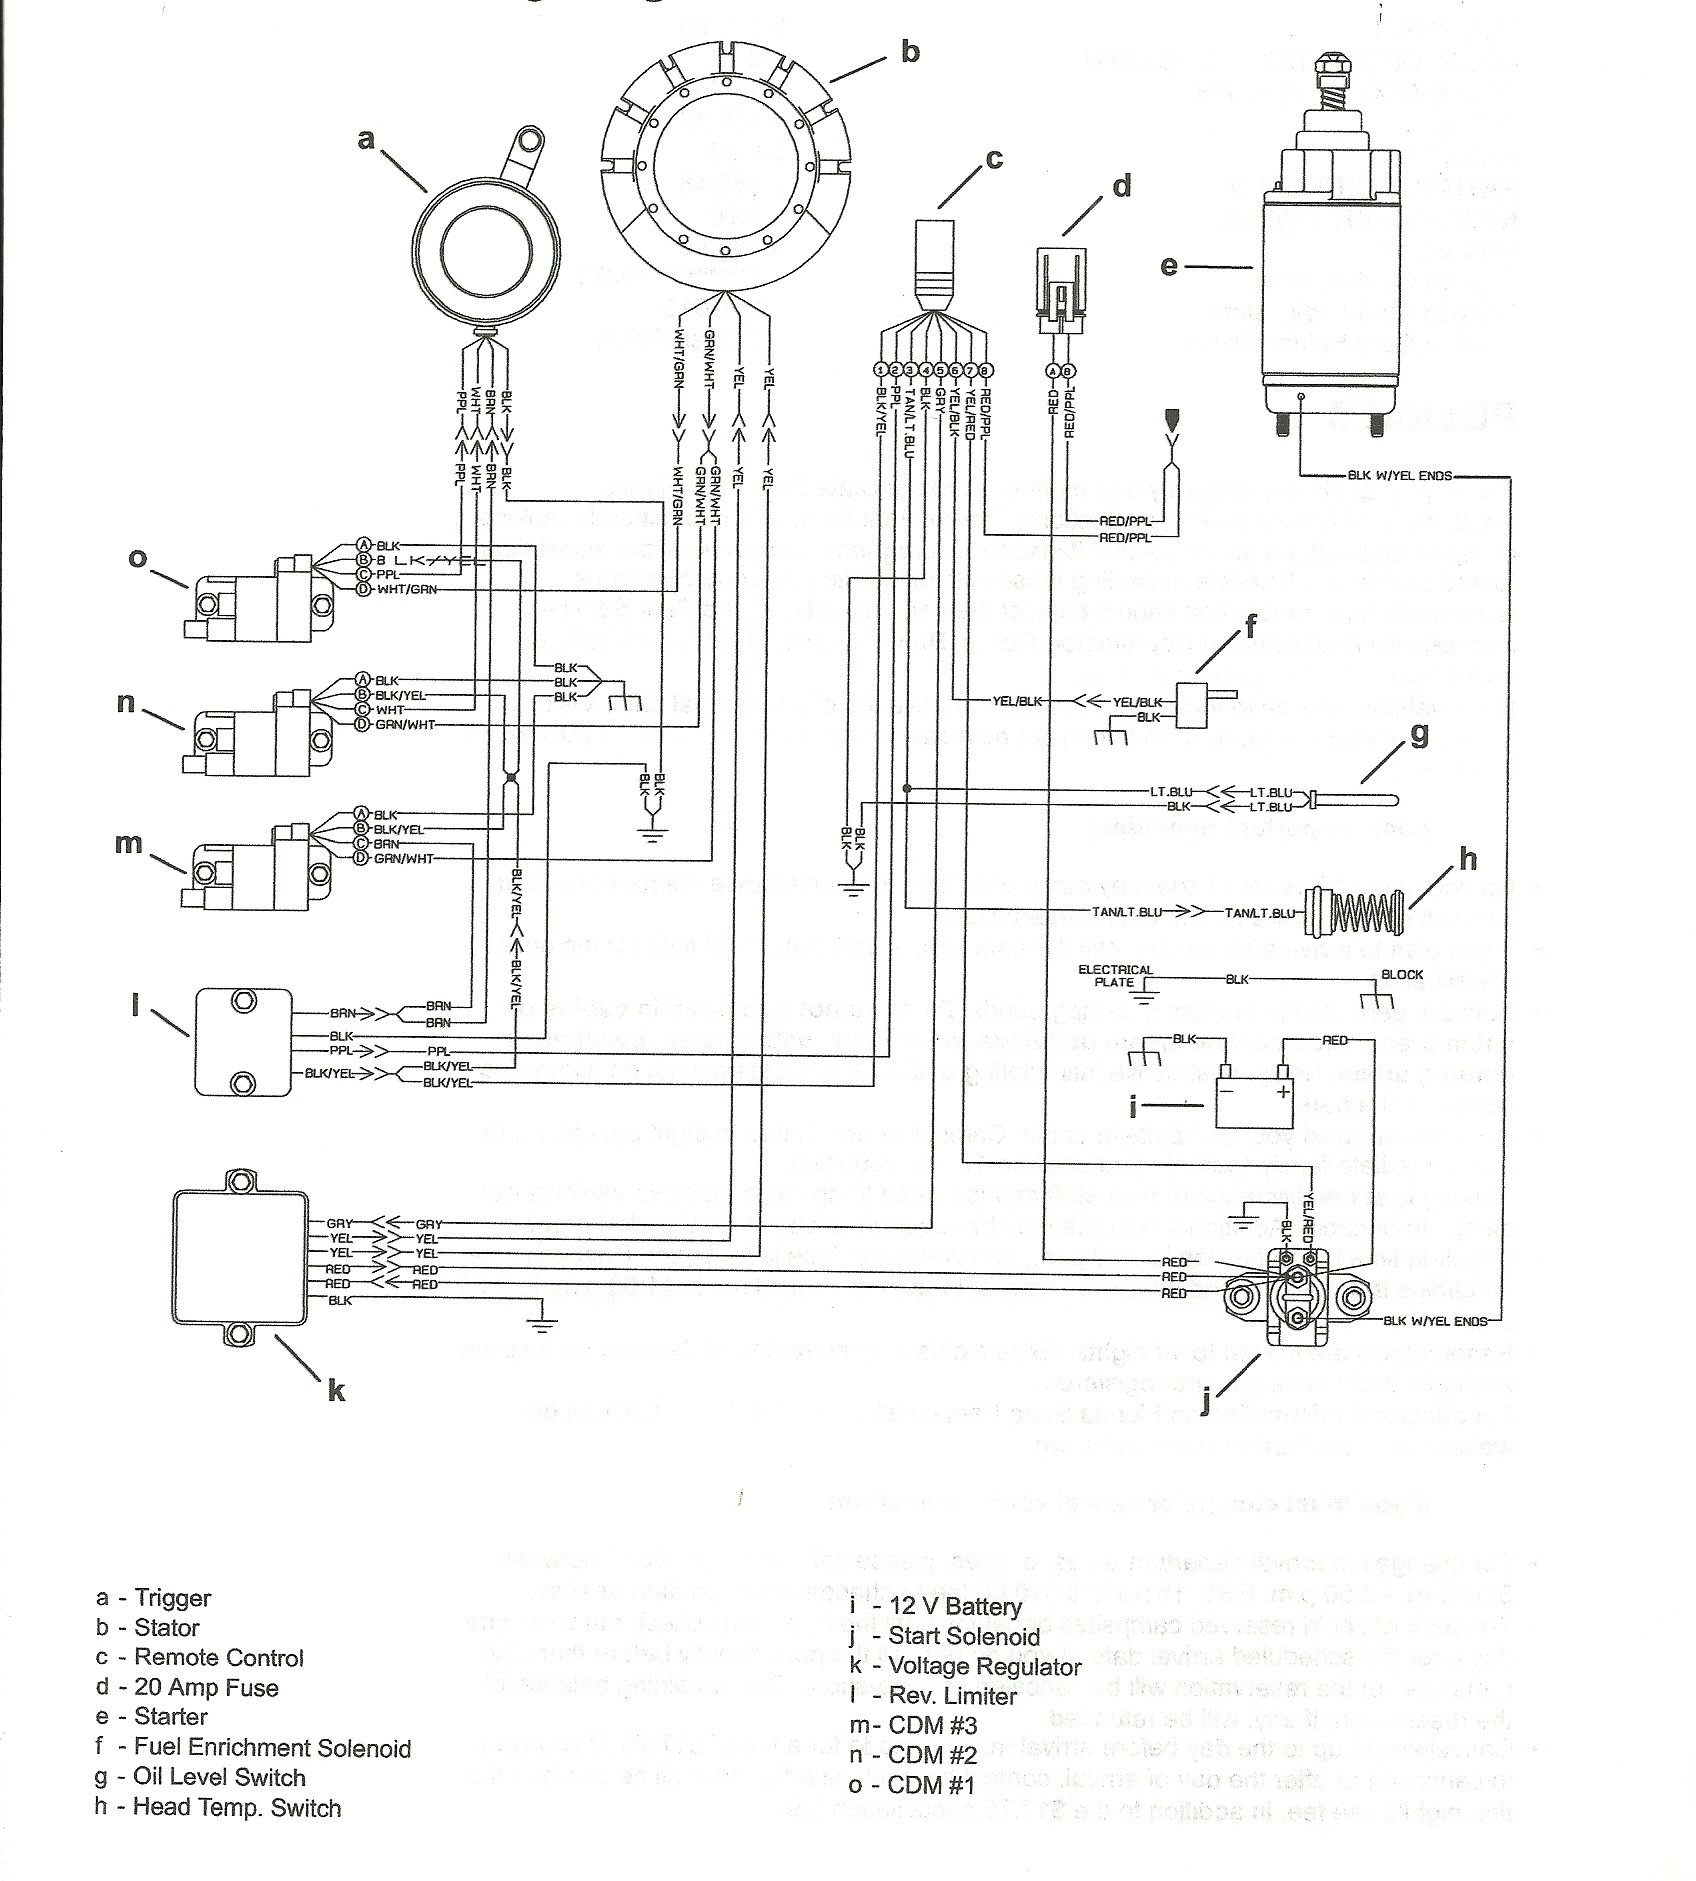 1987 Bass Tracker Wiring Diagram FULL Version HD Quality Wiring Diagram -  PUIG.NETTOYAGEVERTICAL.FRNETTOYAGEVERTICAL.FR